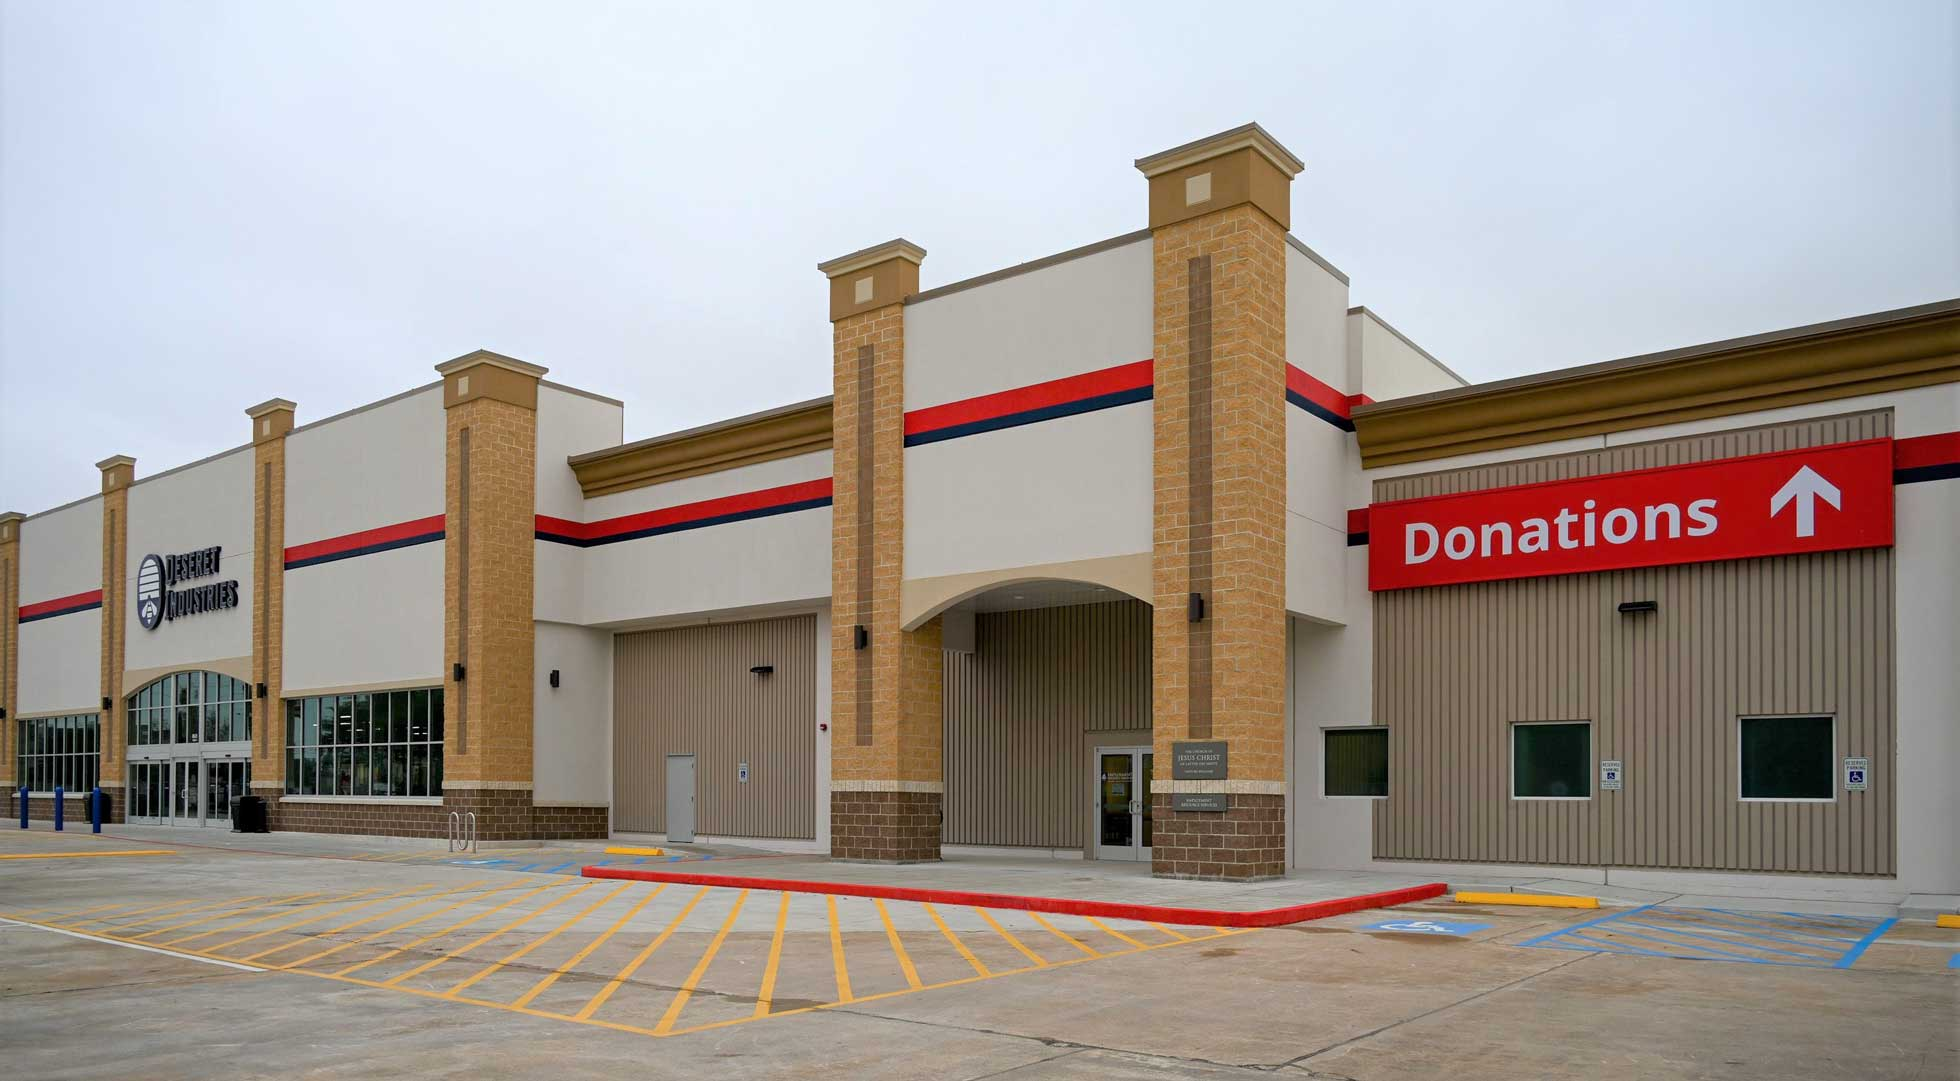 The donation drive-thru at the Houston Deseret Industries.